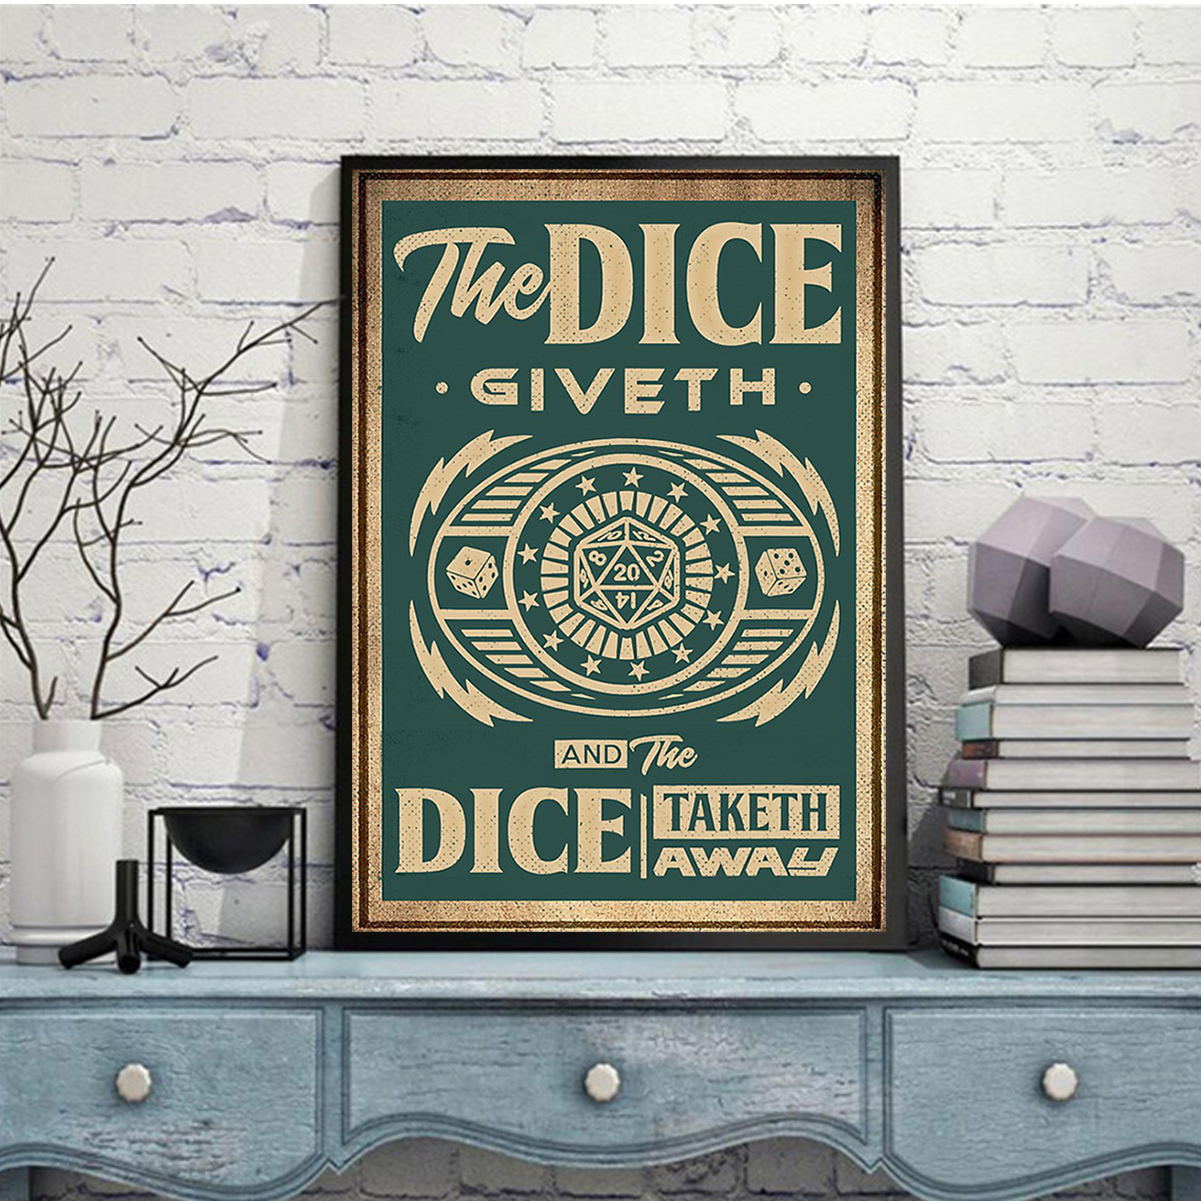 The dice giveth and the dice taketh away poster A2